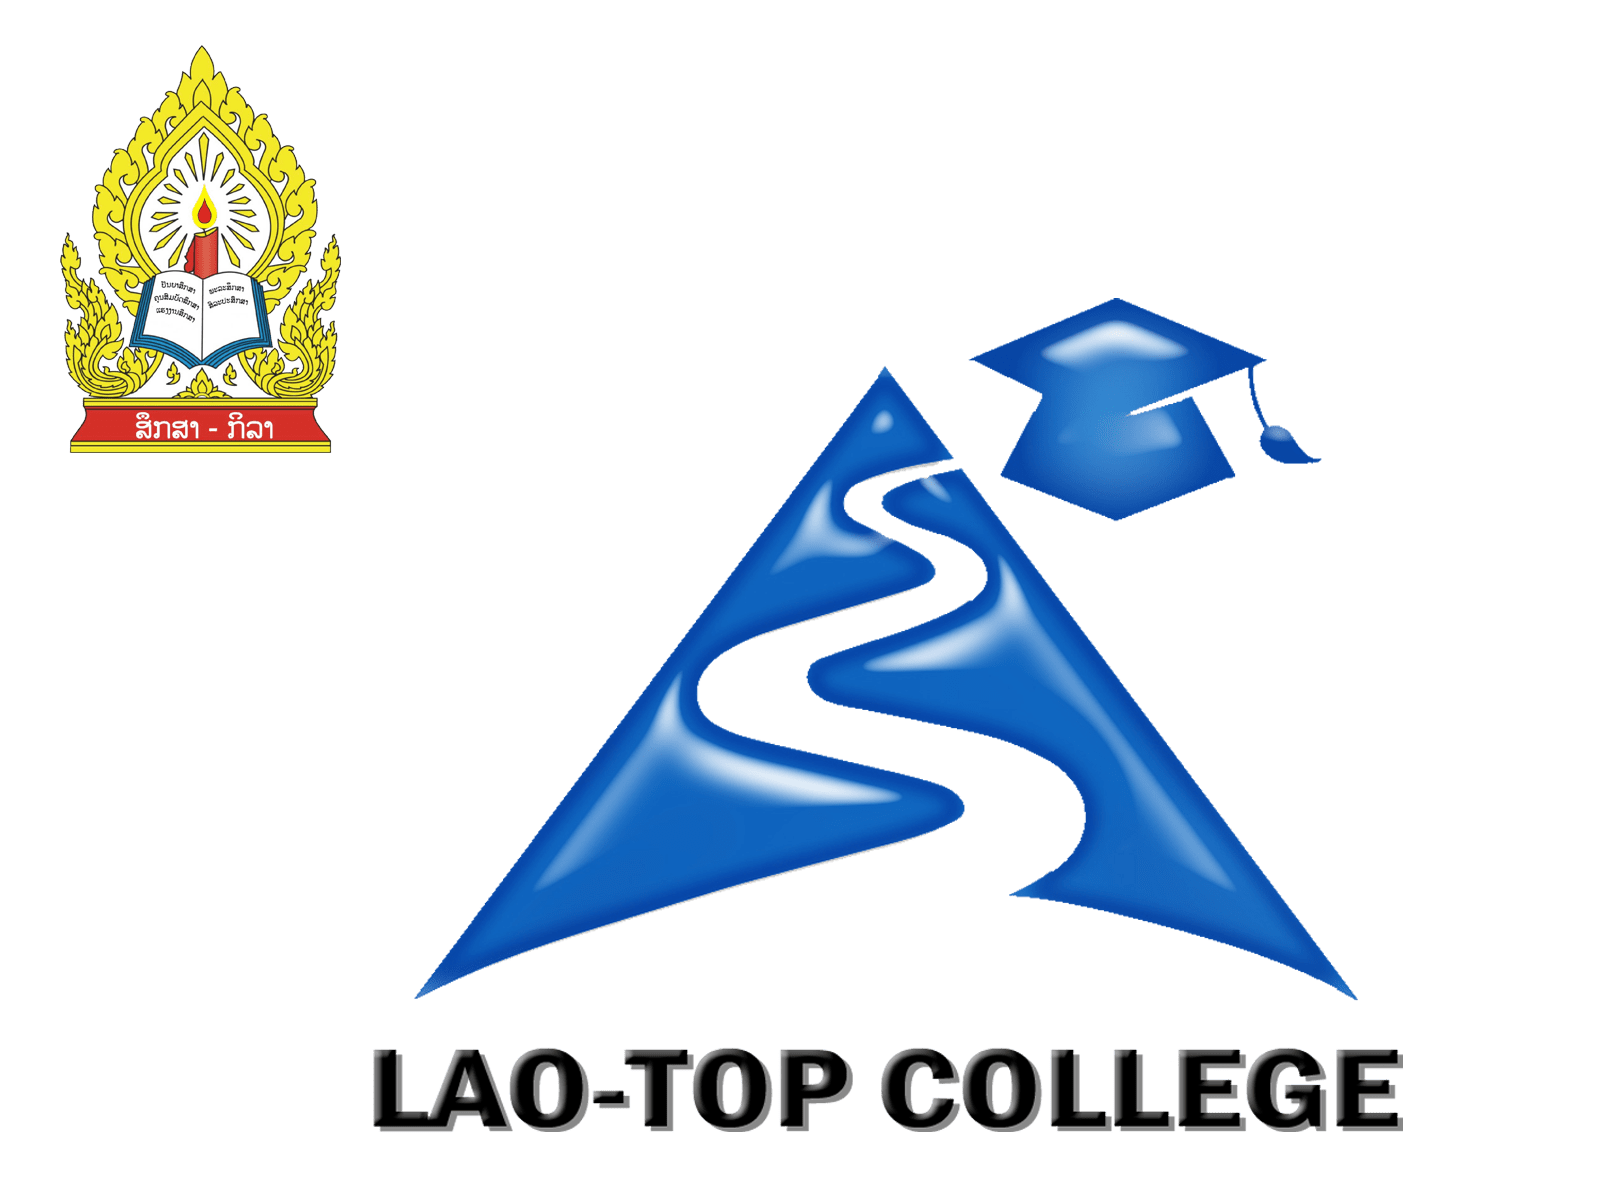 Lao-Top College